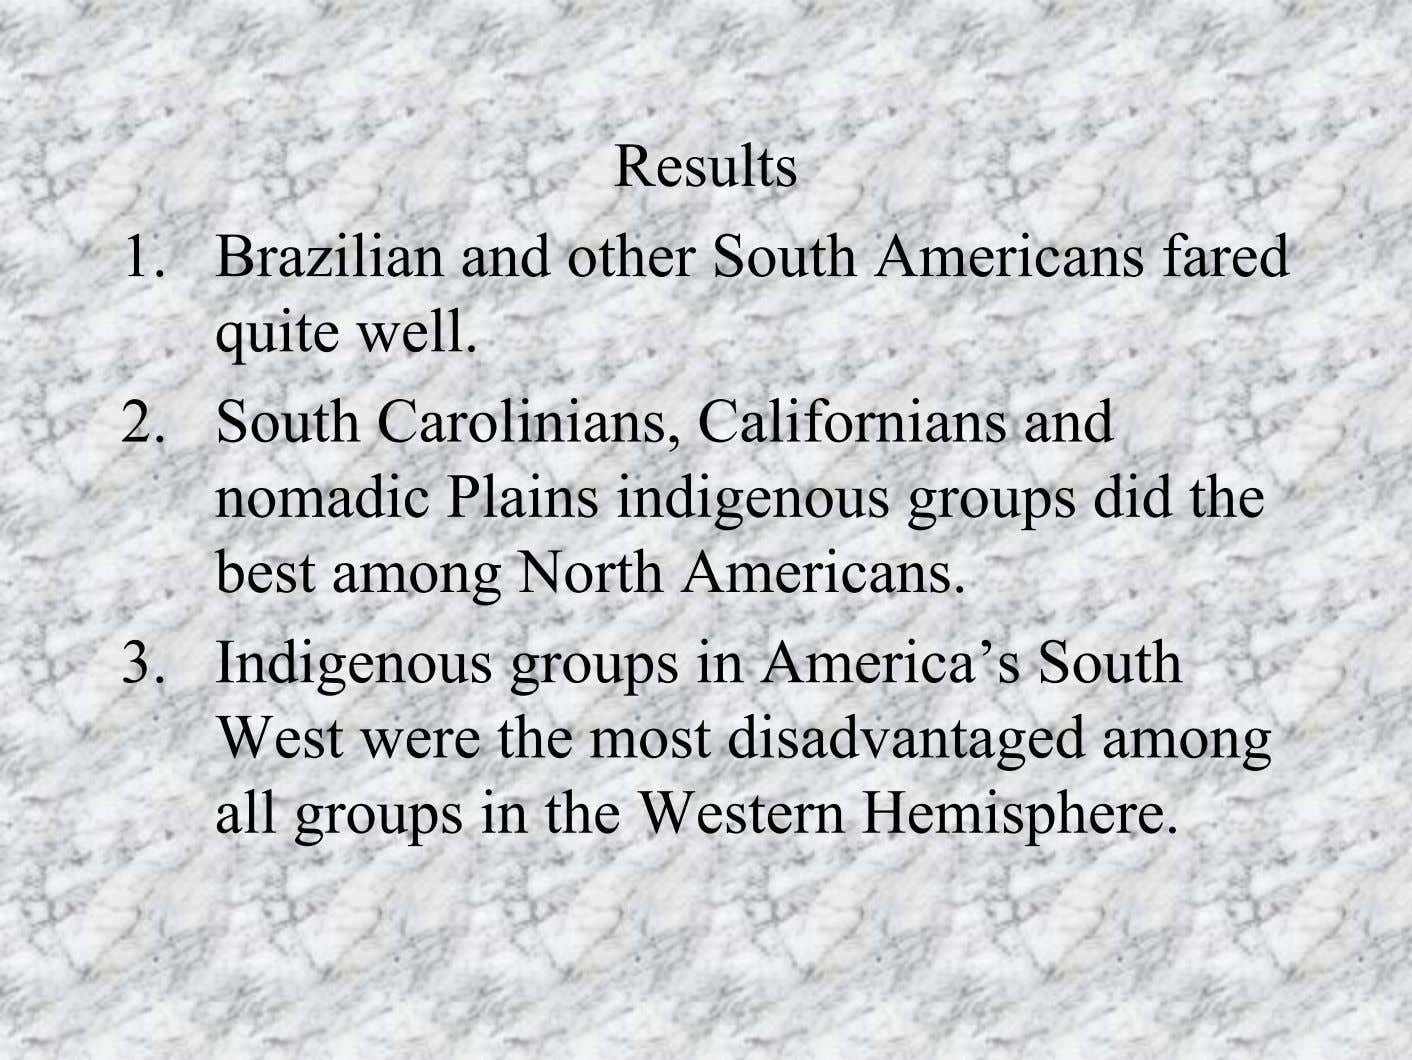 Results 1. Brazilian and other South Americans fared quite well. 2. South Carolinians, Californians and